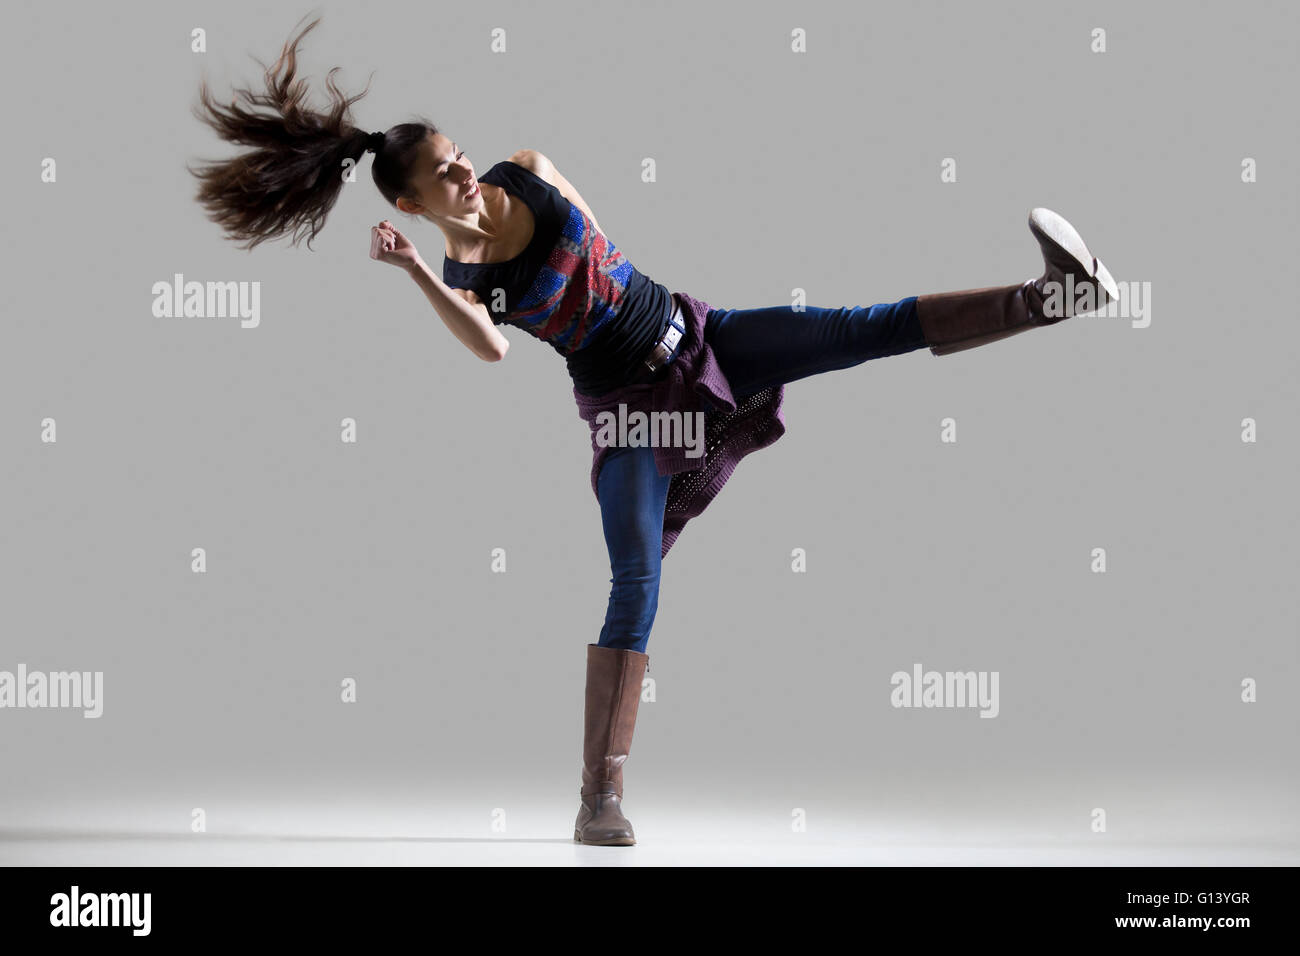 Stylish dancing young woman portrait. Fit athletic girl wearing British flag tank top warming up, working out - Stock Image